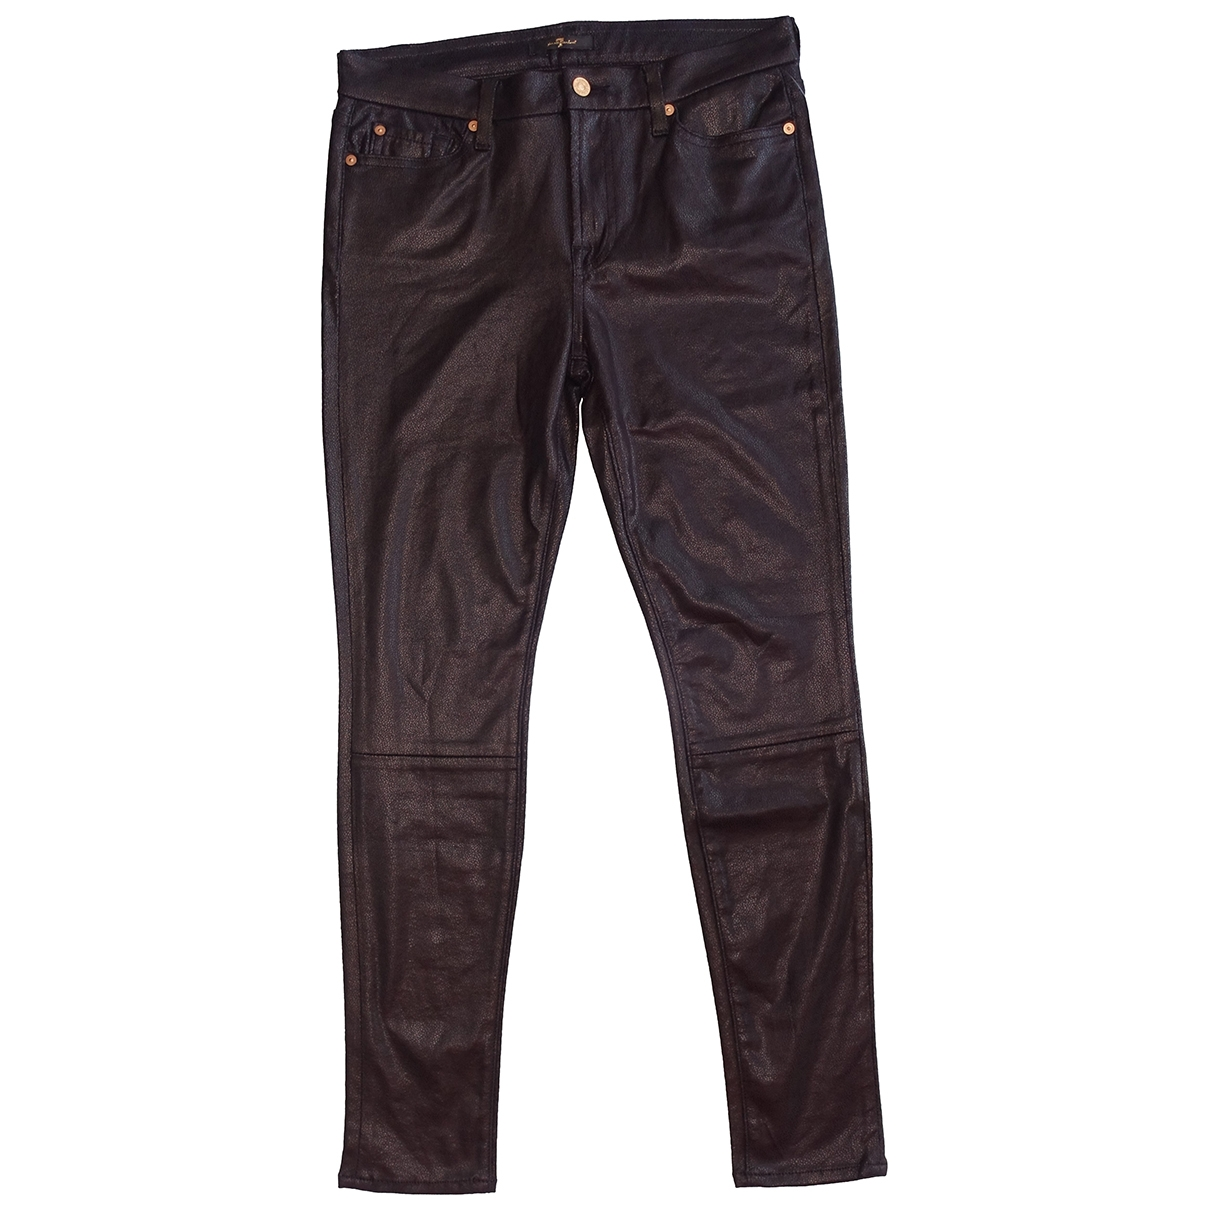 7 For All Mankind \N Black Jeans for Women 30 US